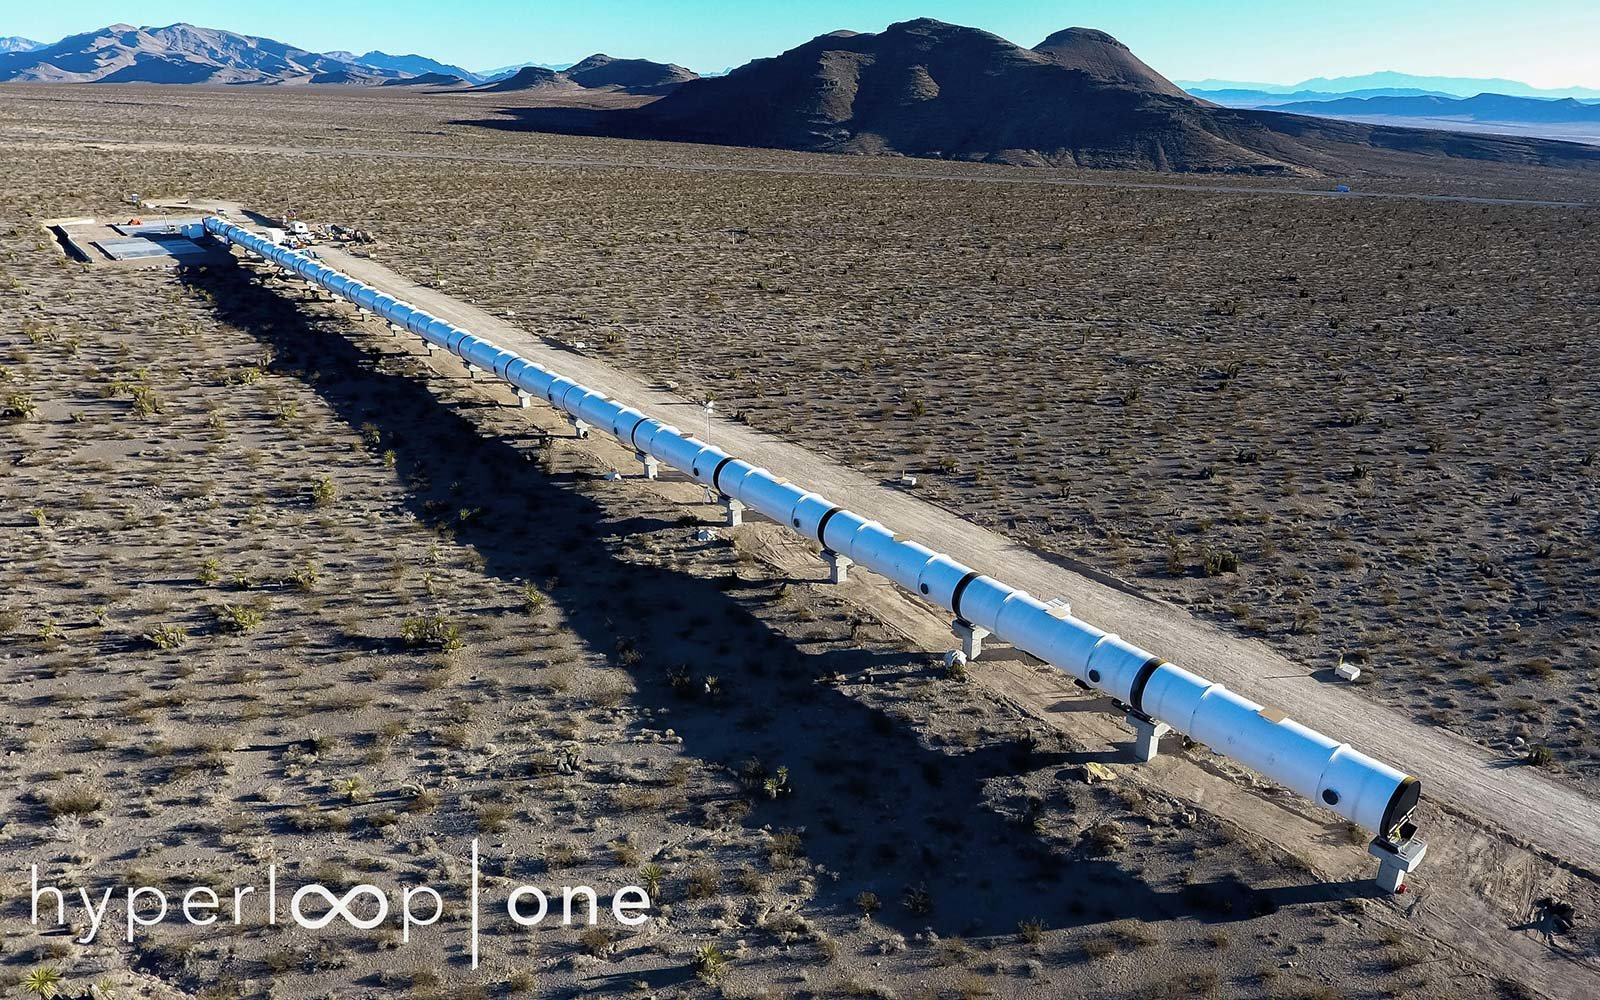 HyperLoop One Test Track in Nevada